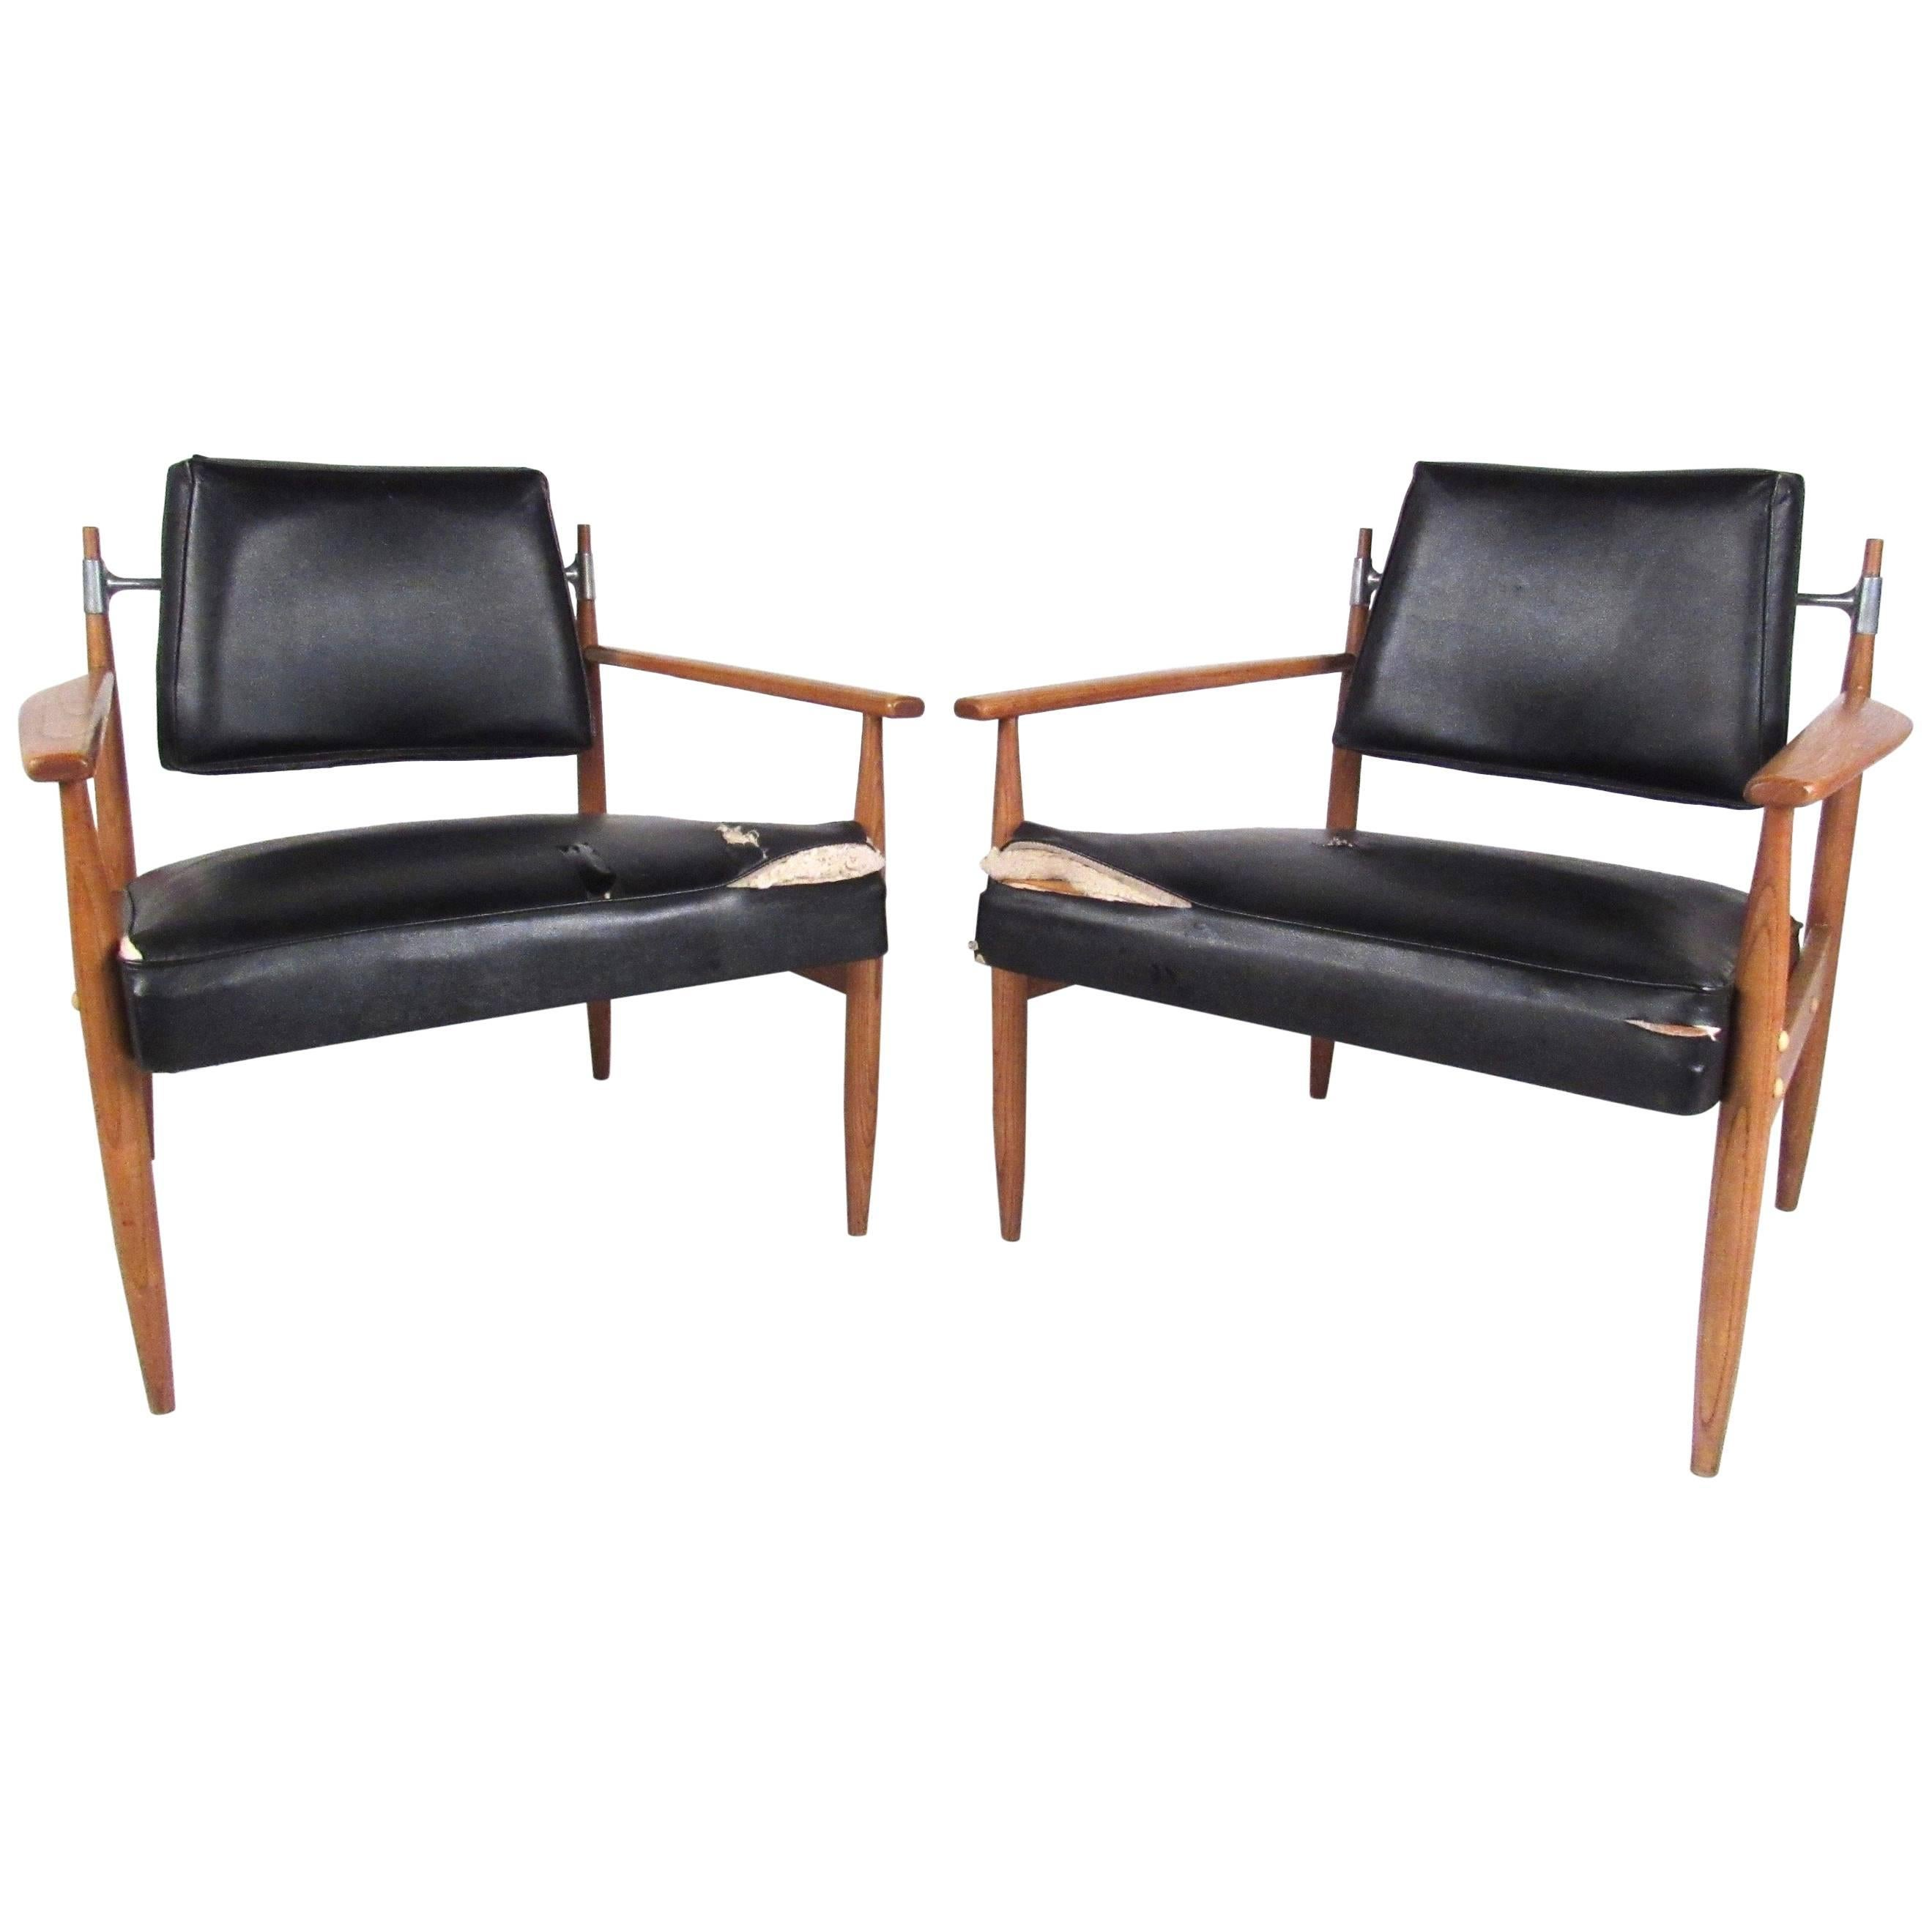 Pair of Midcentury Armchairs by Selrite